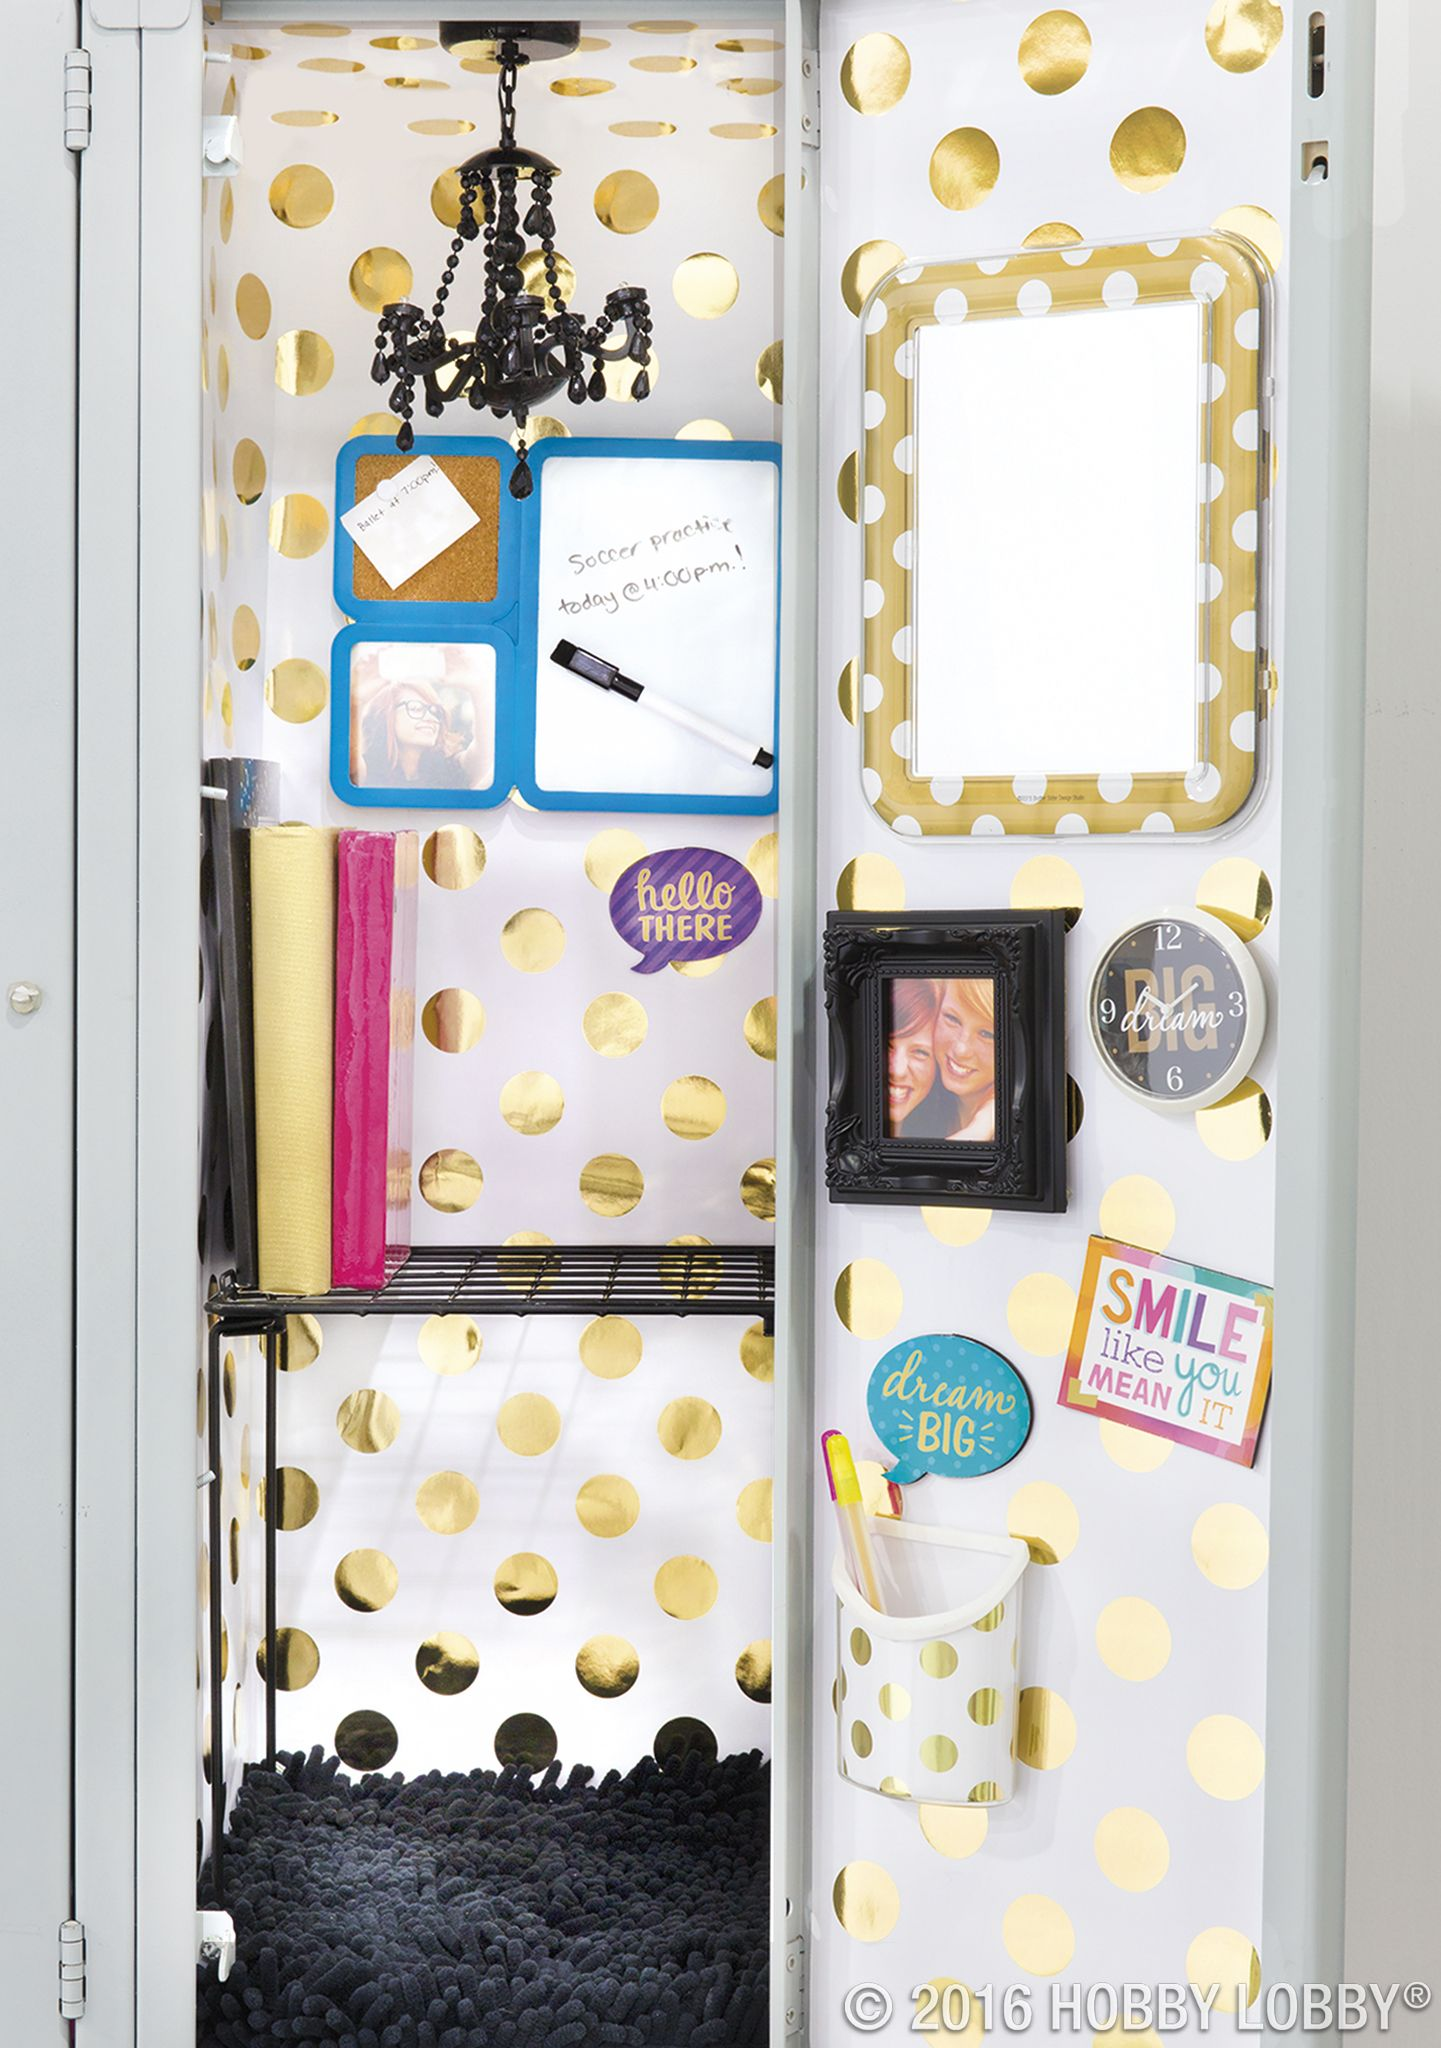 Locker Decoration Ideas add your own personality to your school space. simply mix and